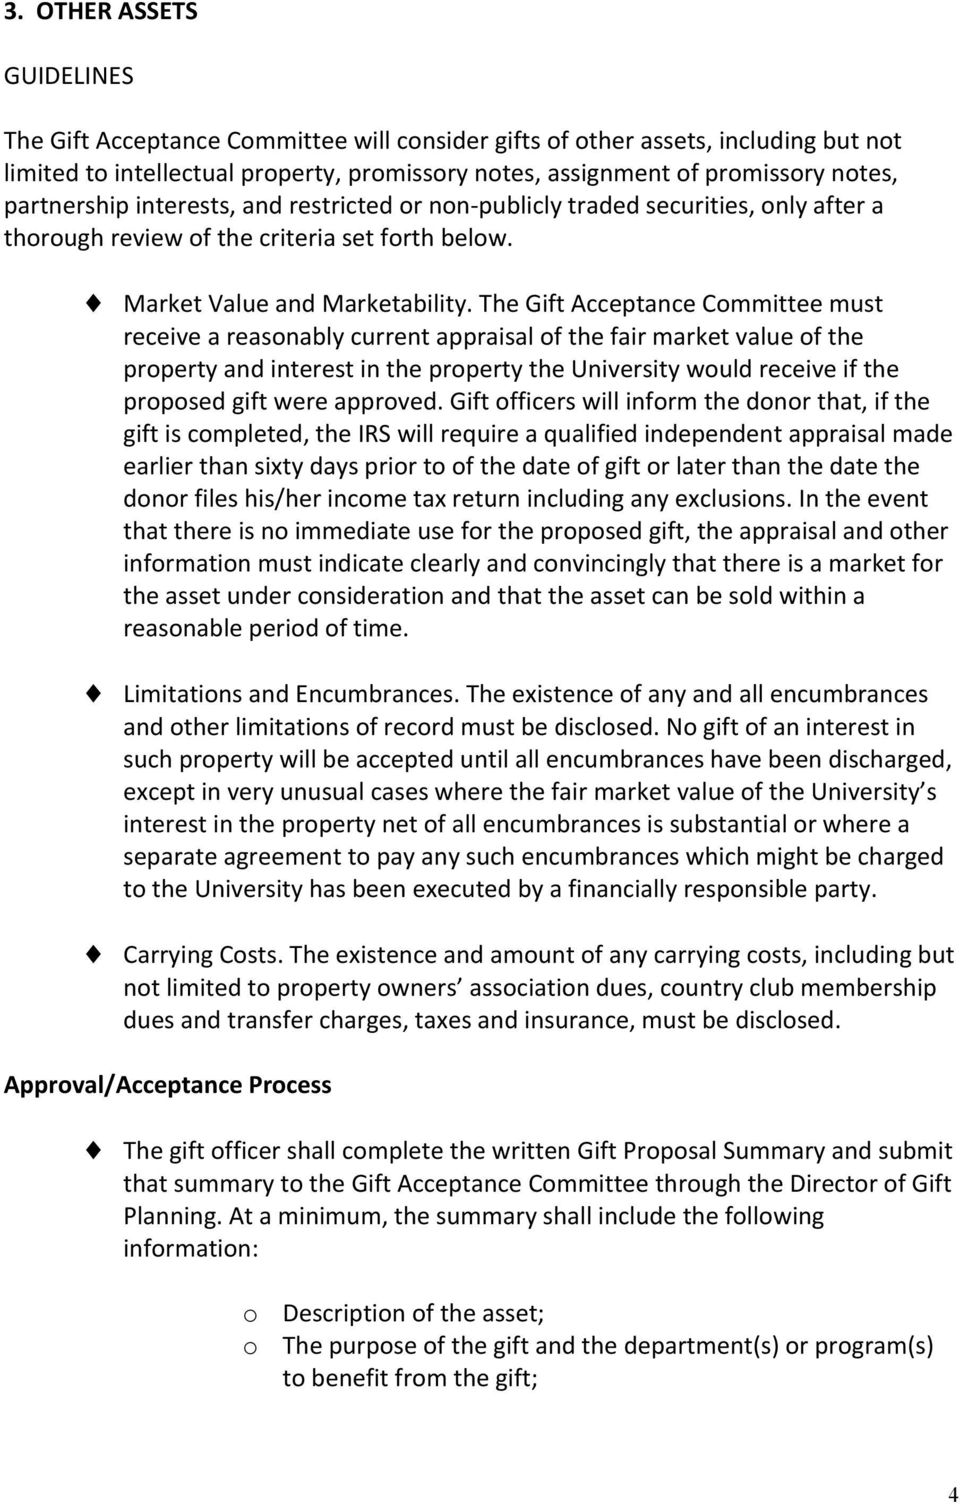 The Gift Acceptance Committee must receive a reasonably current appraisal of the fair market value of the property and interest in the property the University would receive if the proposed gift were